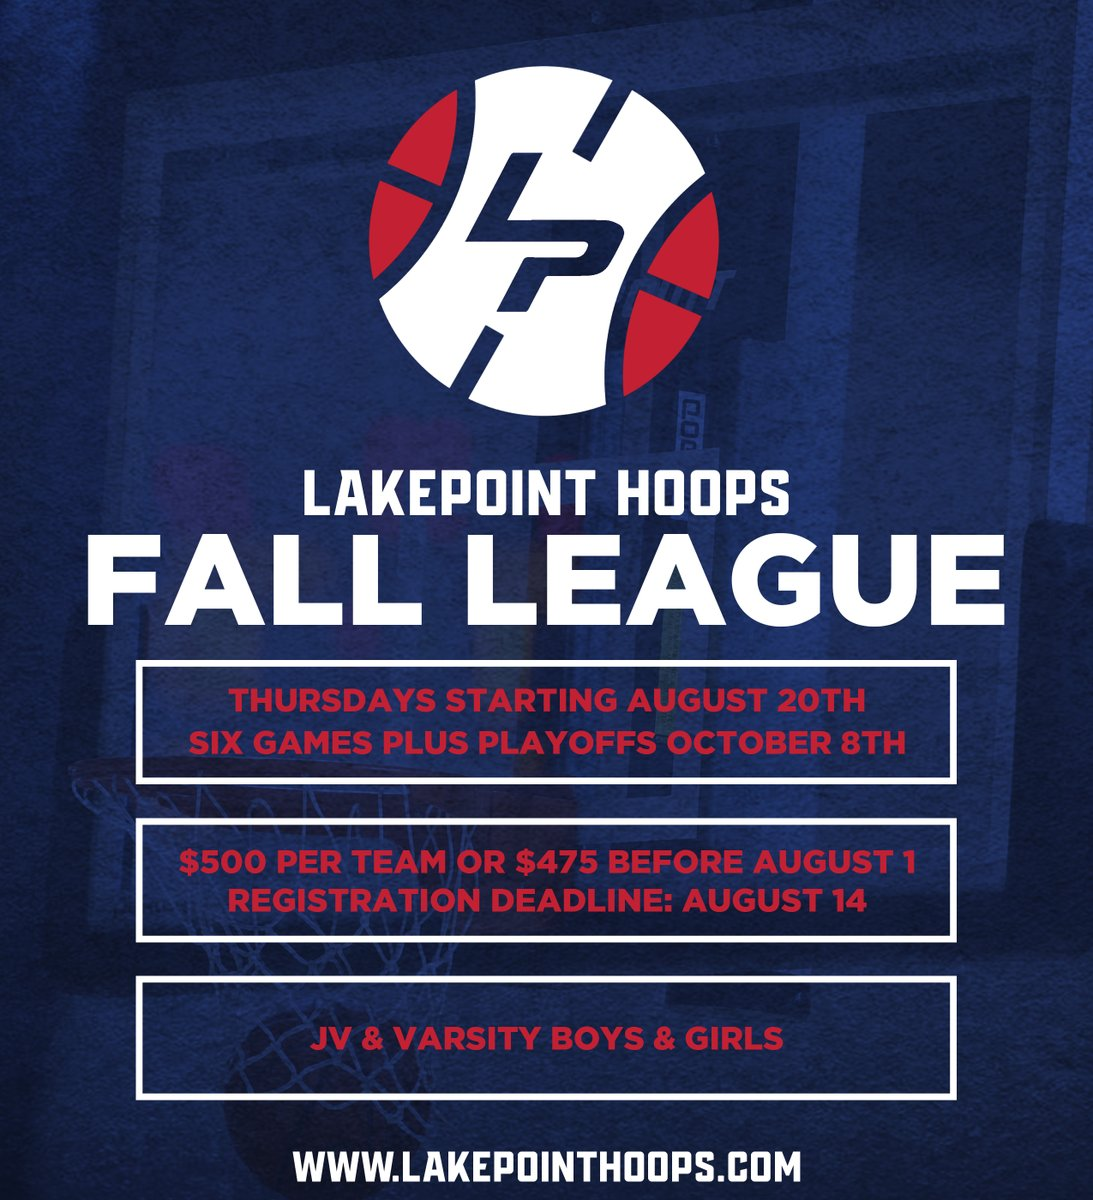 Only a few days left to register for the #LakePointHoops Fall League. Spots are limited and we are almost full!  Register: https://t.co/x2uZX0WNlb https://t.co/vEDkVqSs3I